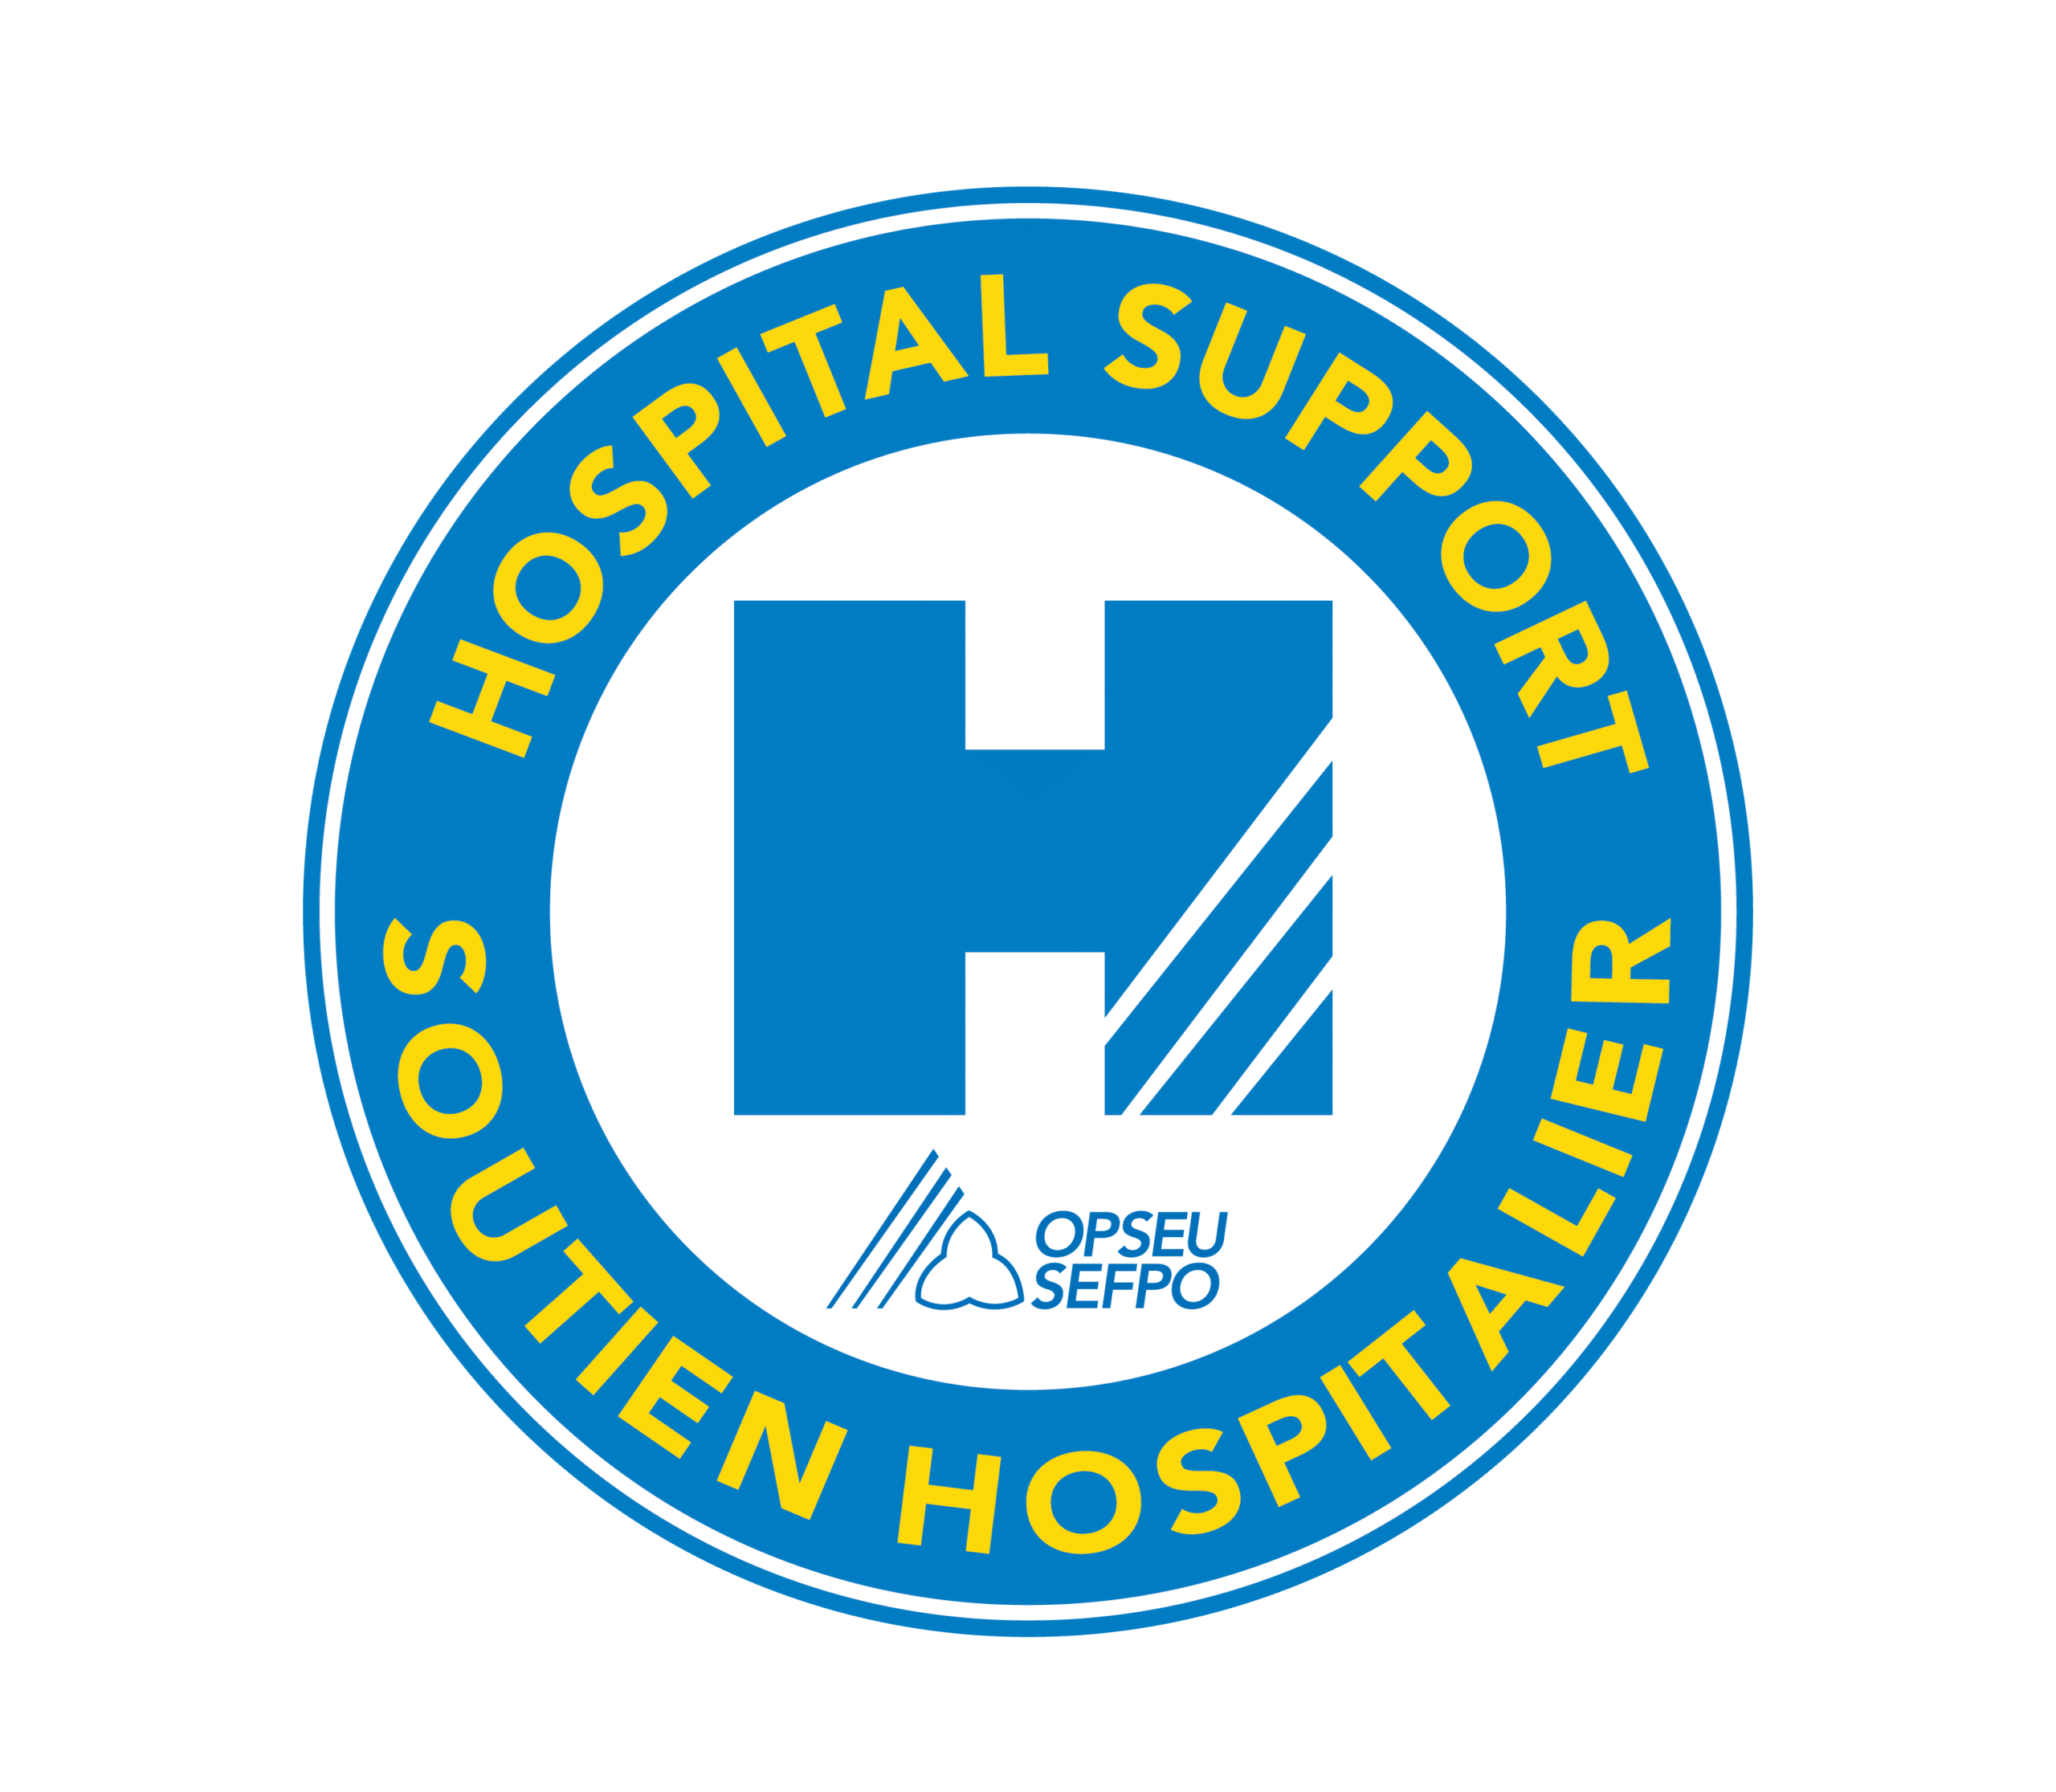 Circular logo with Hospital Support around the top, Soutien Hospitalier around the bottom